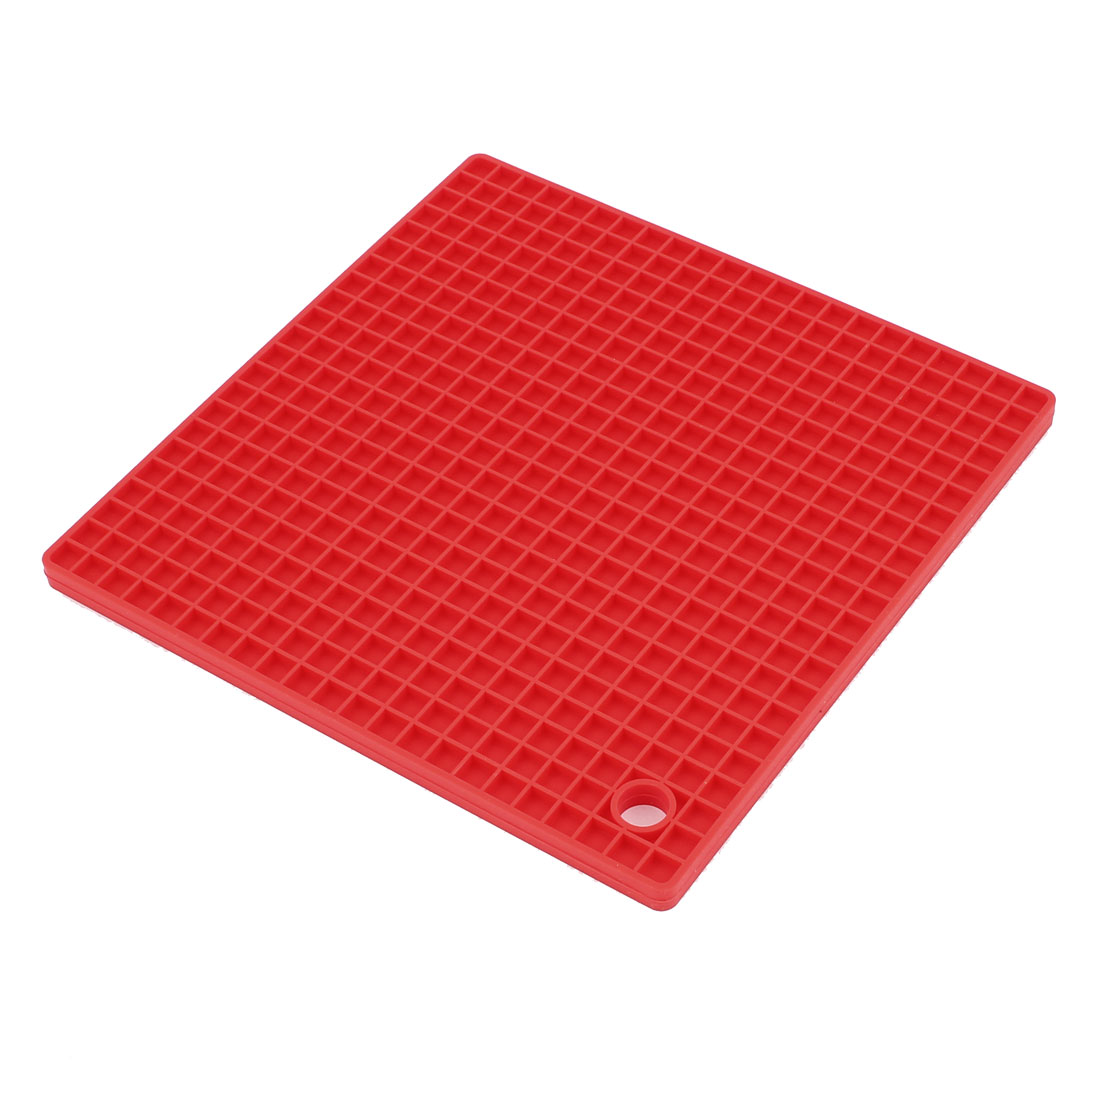 Square Shaped Antislip Silicone Heat Resistant Mat Red